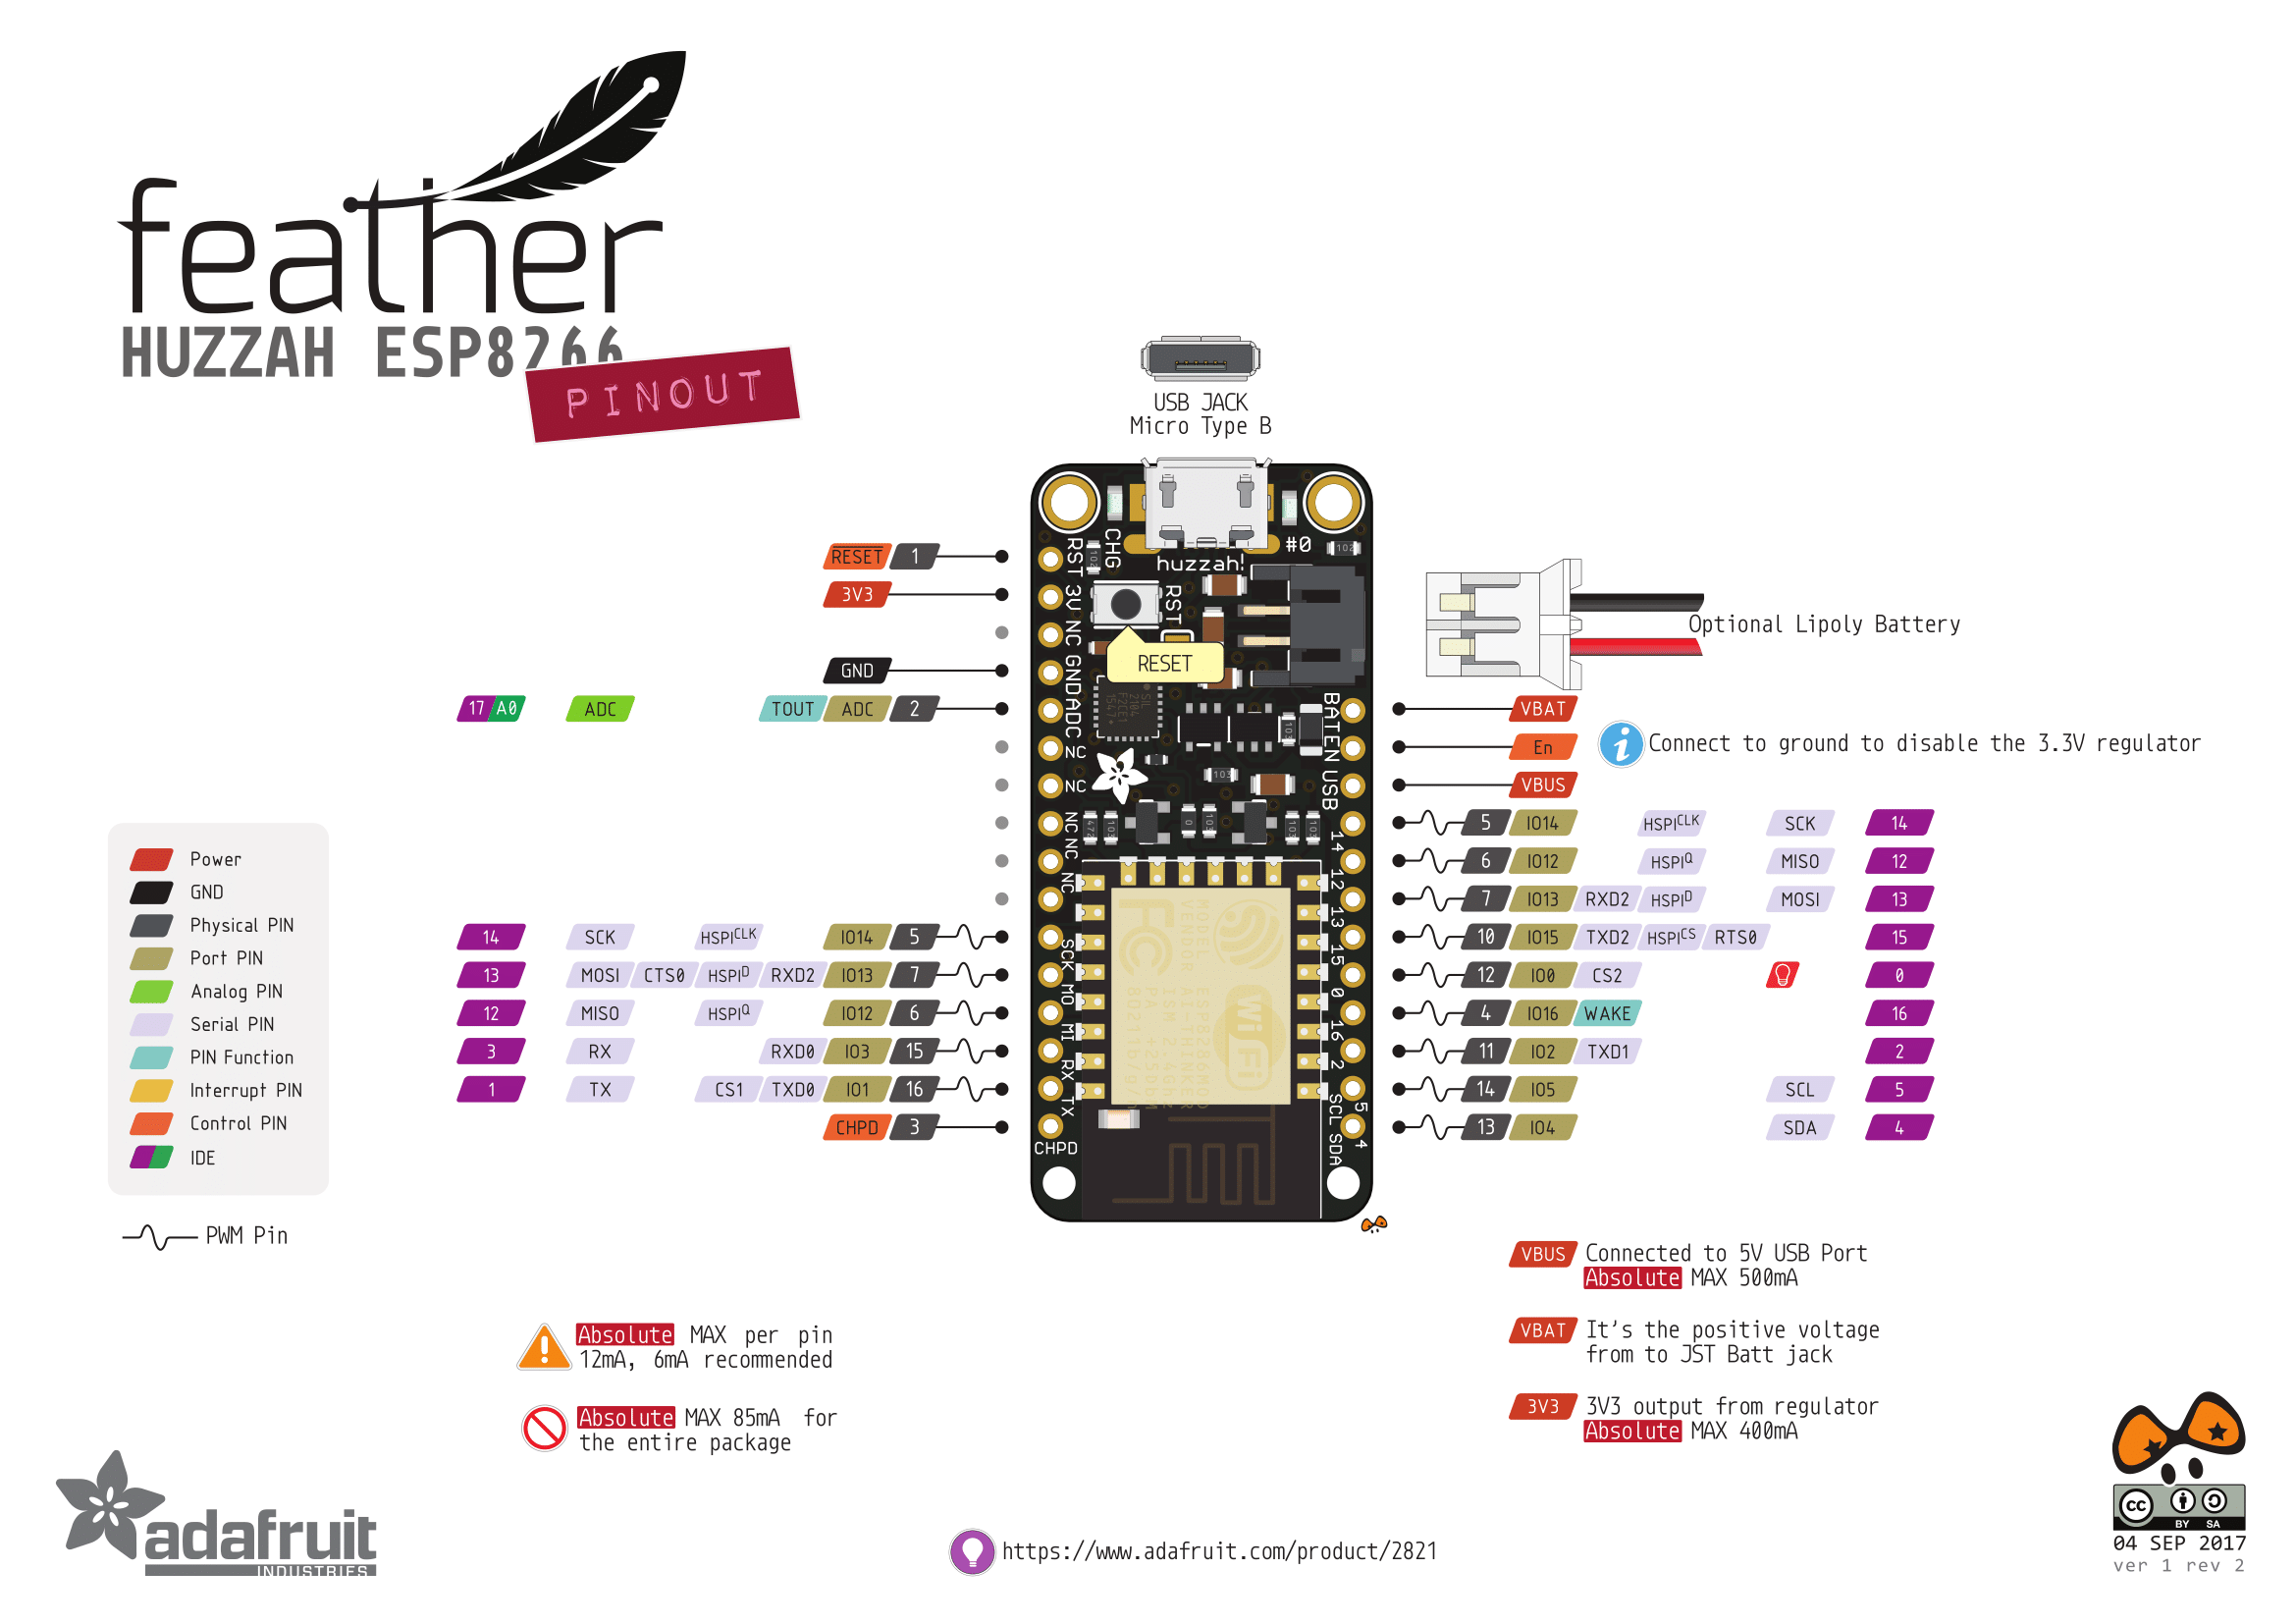 Pinouts | Adafruit Feather HUZZAH ESP8266 | Adafruit Learning System